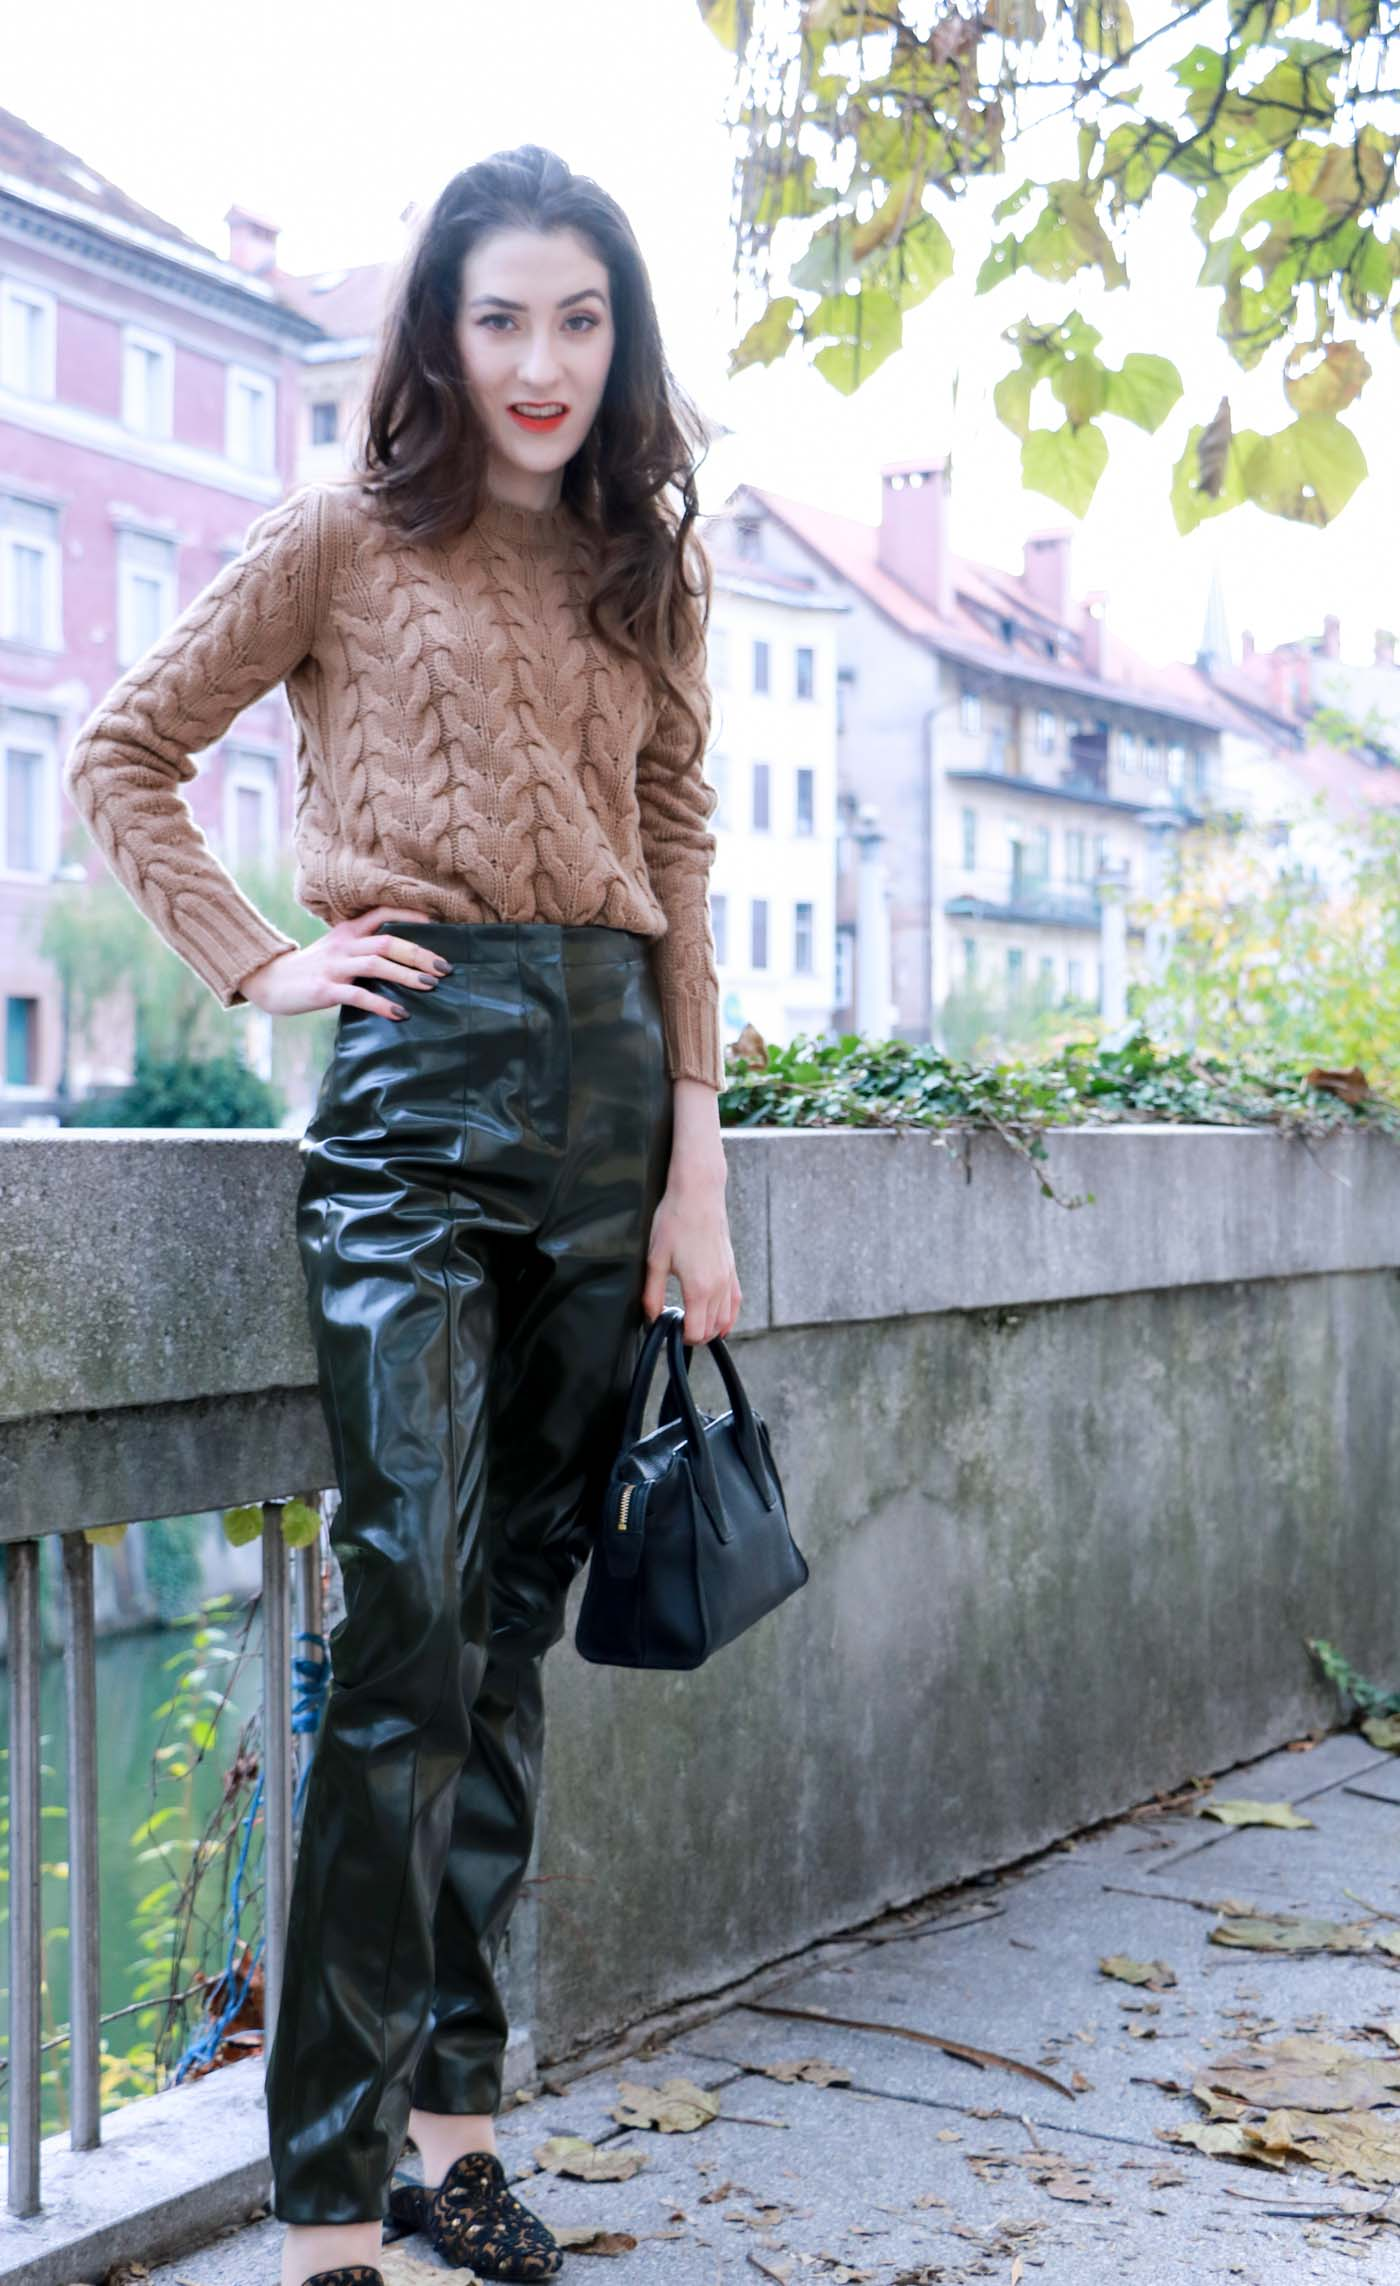 Fashion Blogger Veronika Lipar of Brunette from Wall Street on how to wear streight-leg high-shine vinyl pants and cashmere and wool cable knit sweater